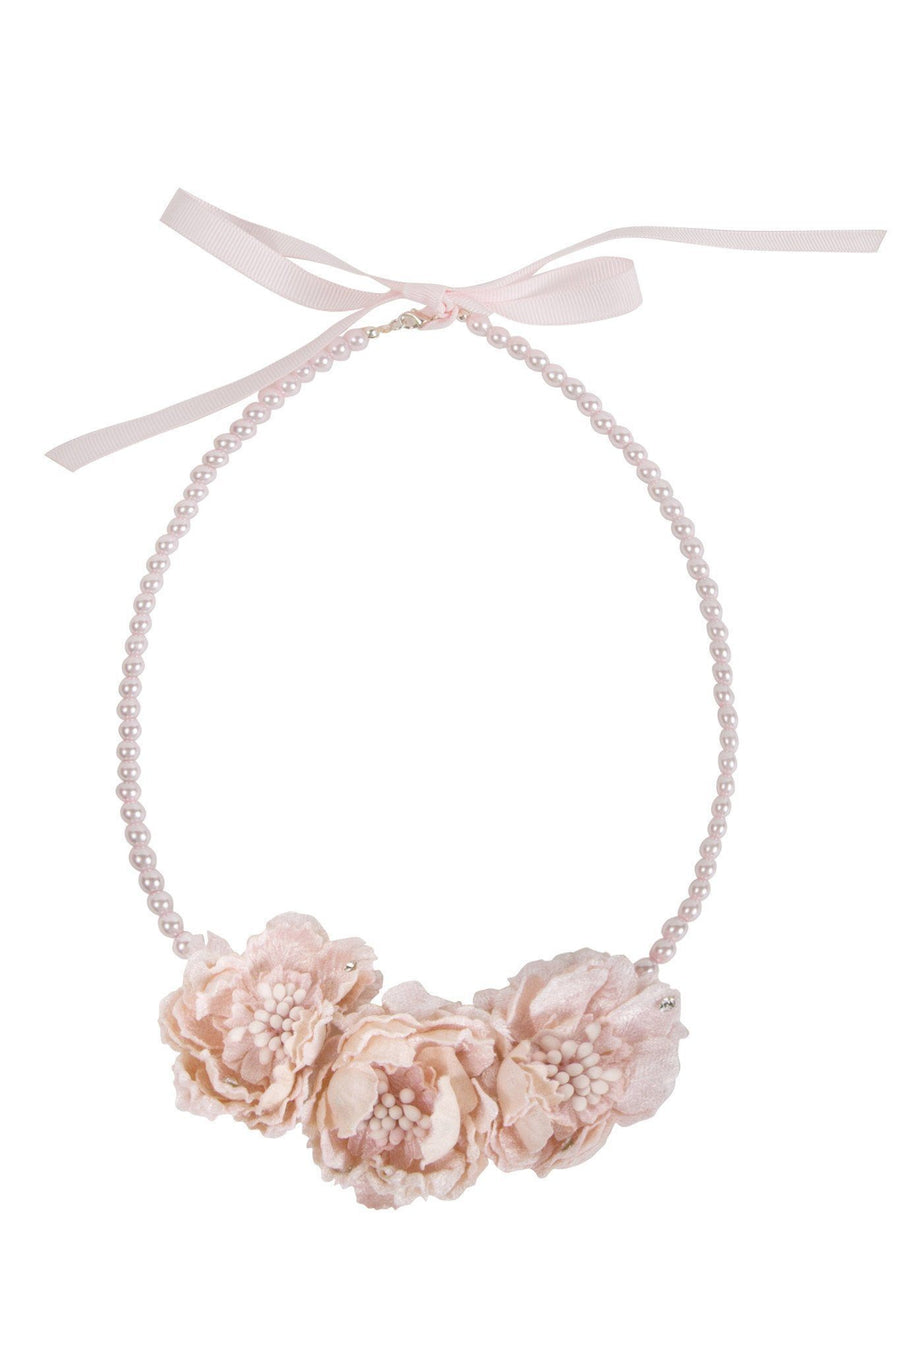 Hazel Necklace - Pink